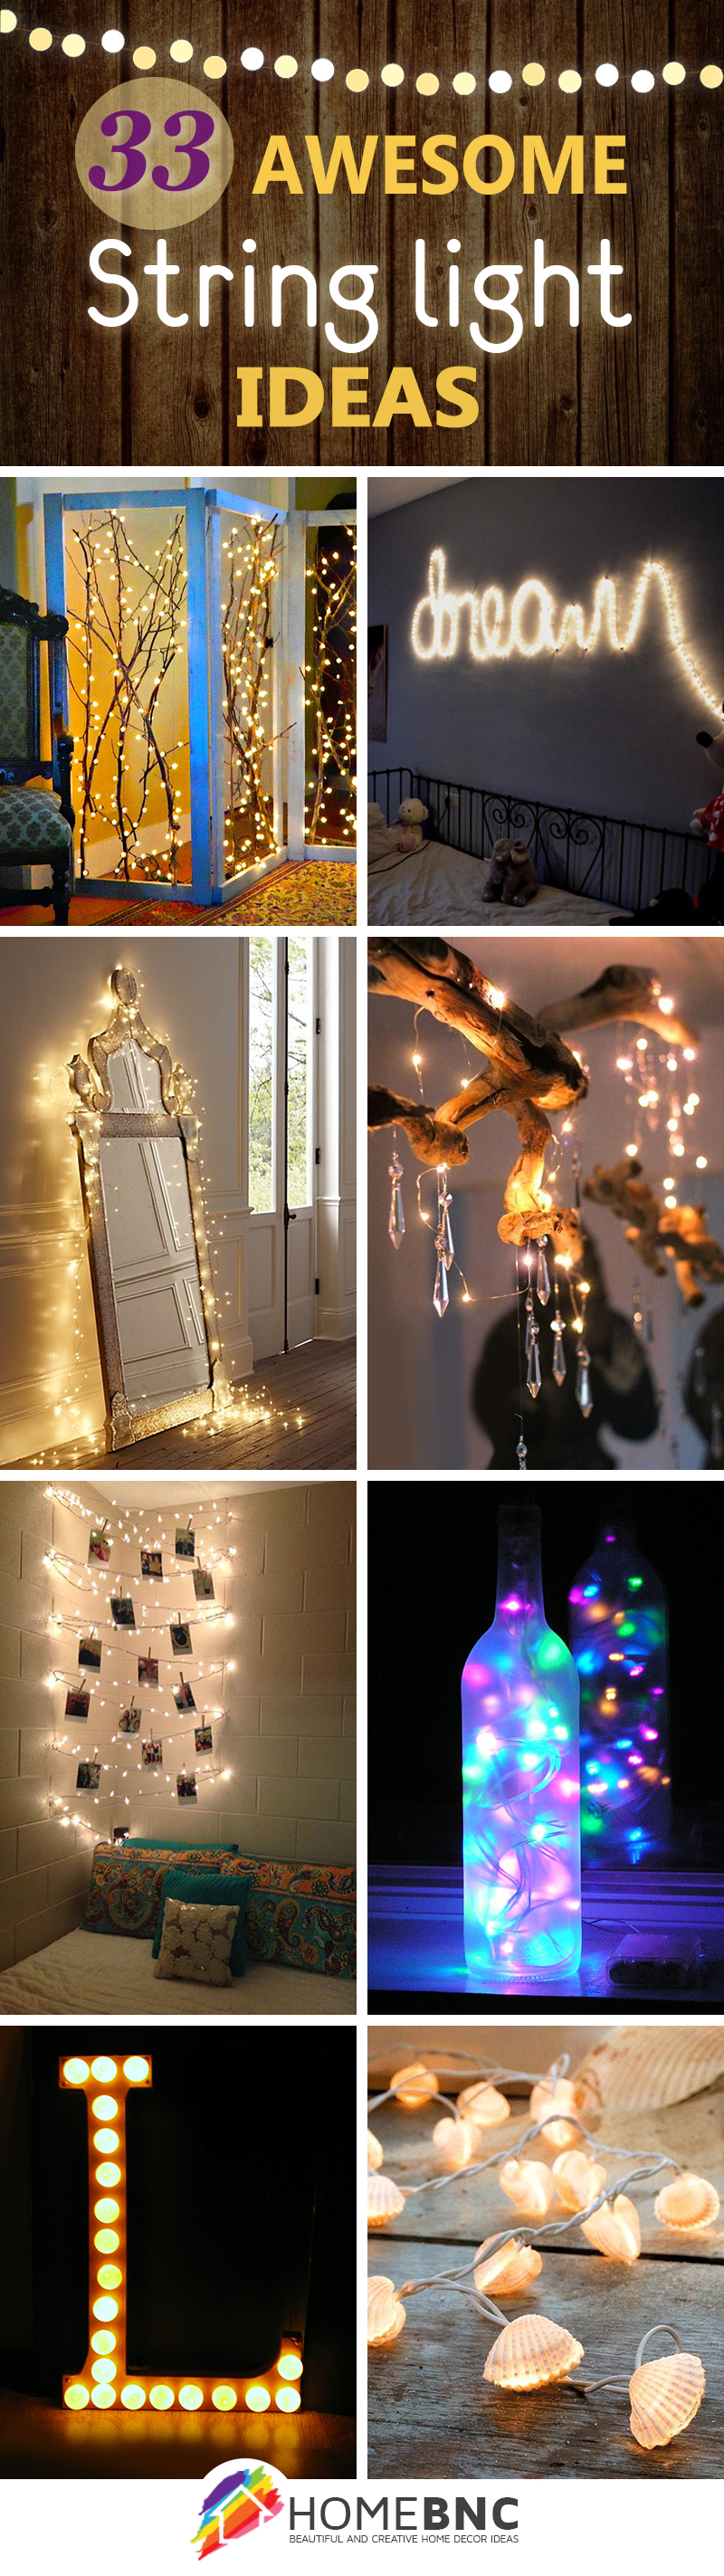 https://homebnc.com/homeimg/2016/08/string-lights-decorating-ideas-pinterest-share-homebnc.jpg